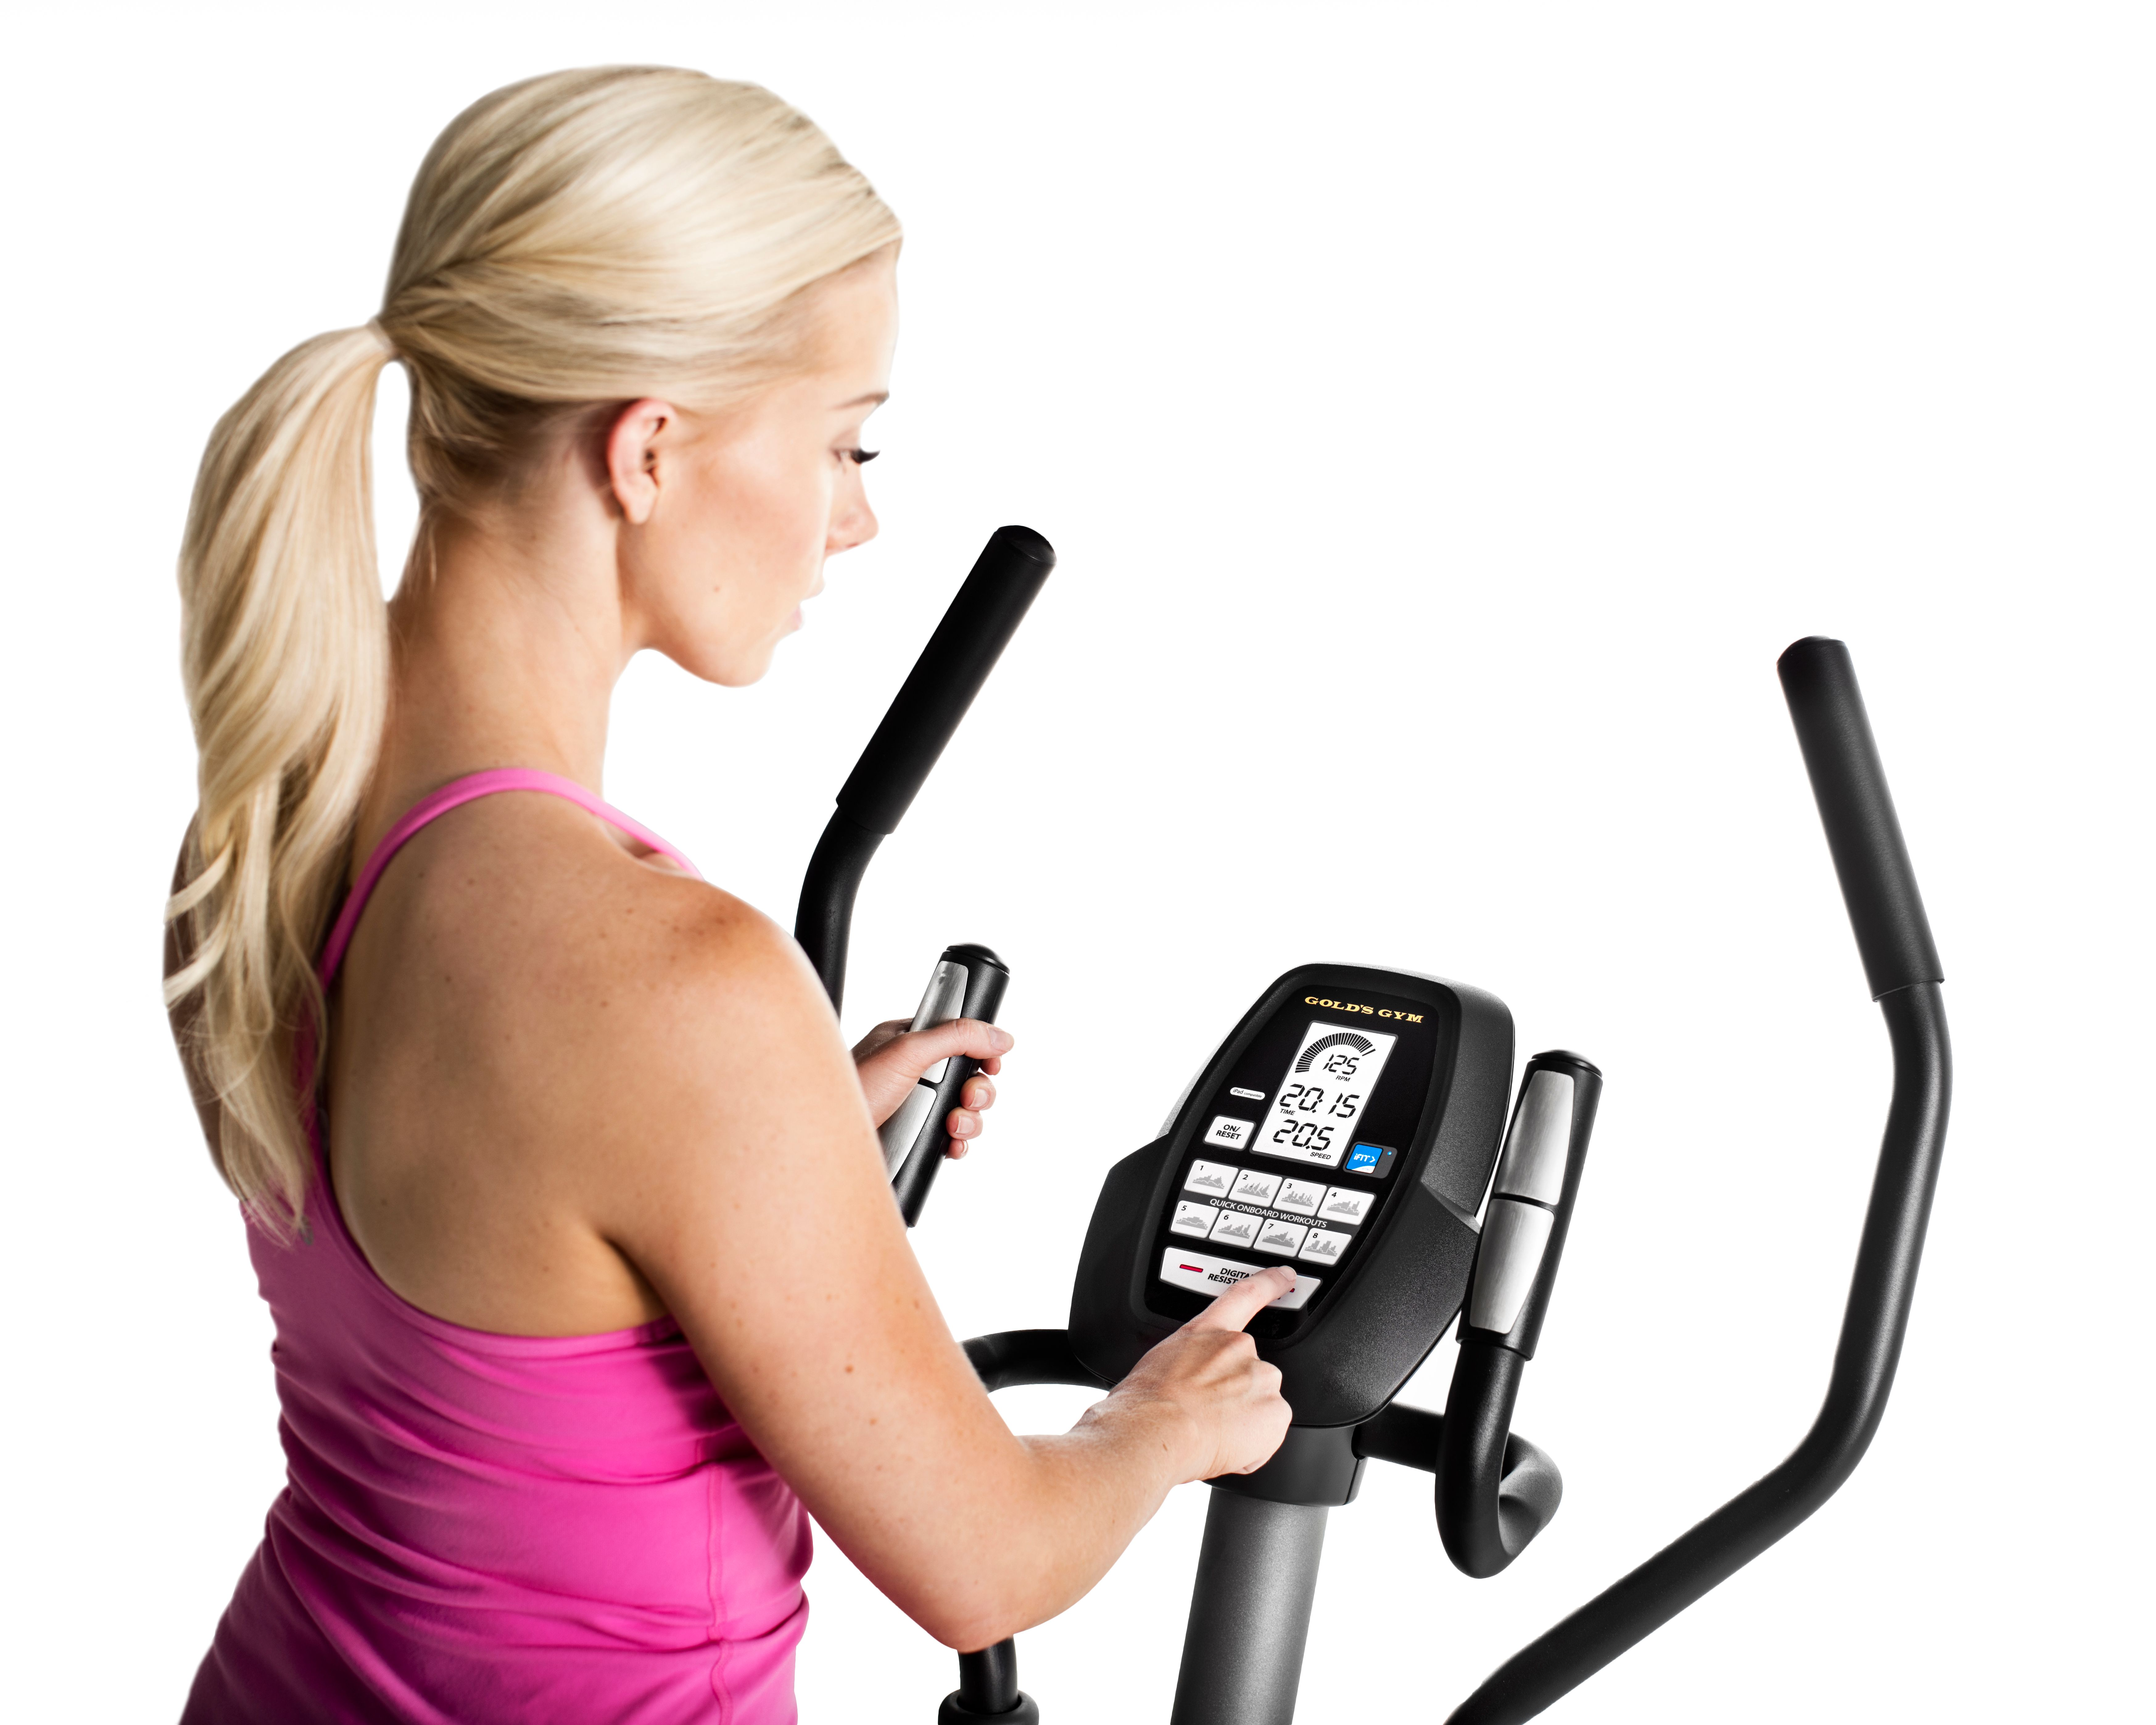 6f82dee4c3 Upgrade your fitness with one of 8 built-in workouts professionally  designed by a certified personal trainer. Reach your goals and address your  personal ...